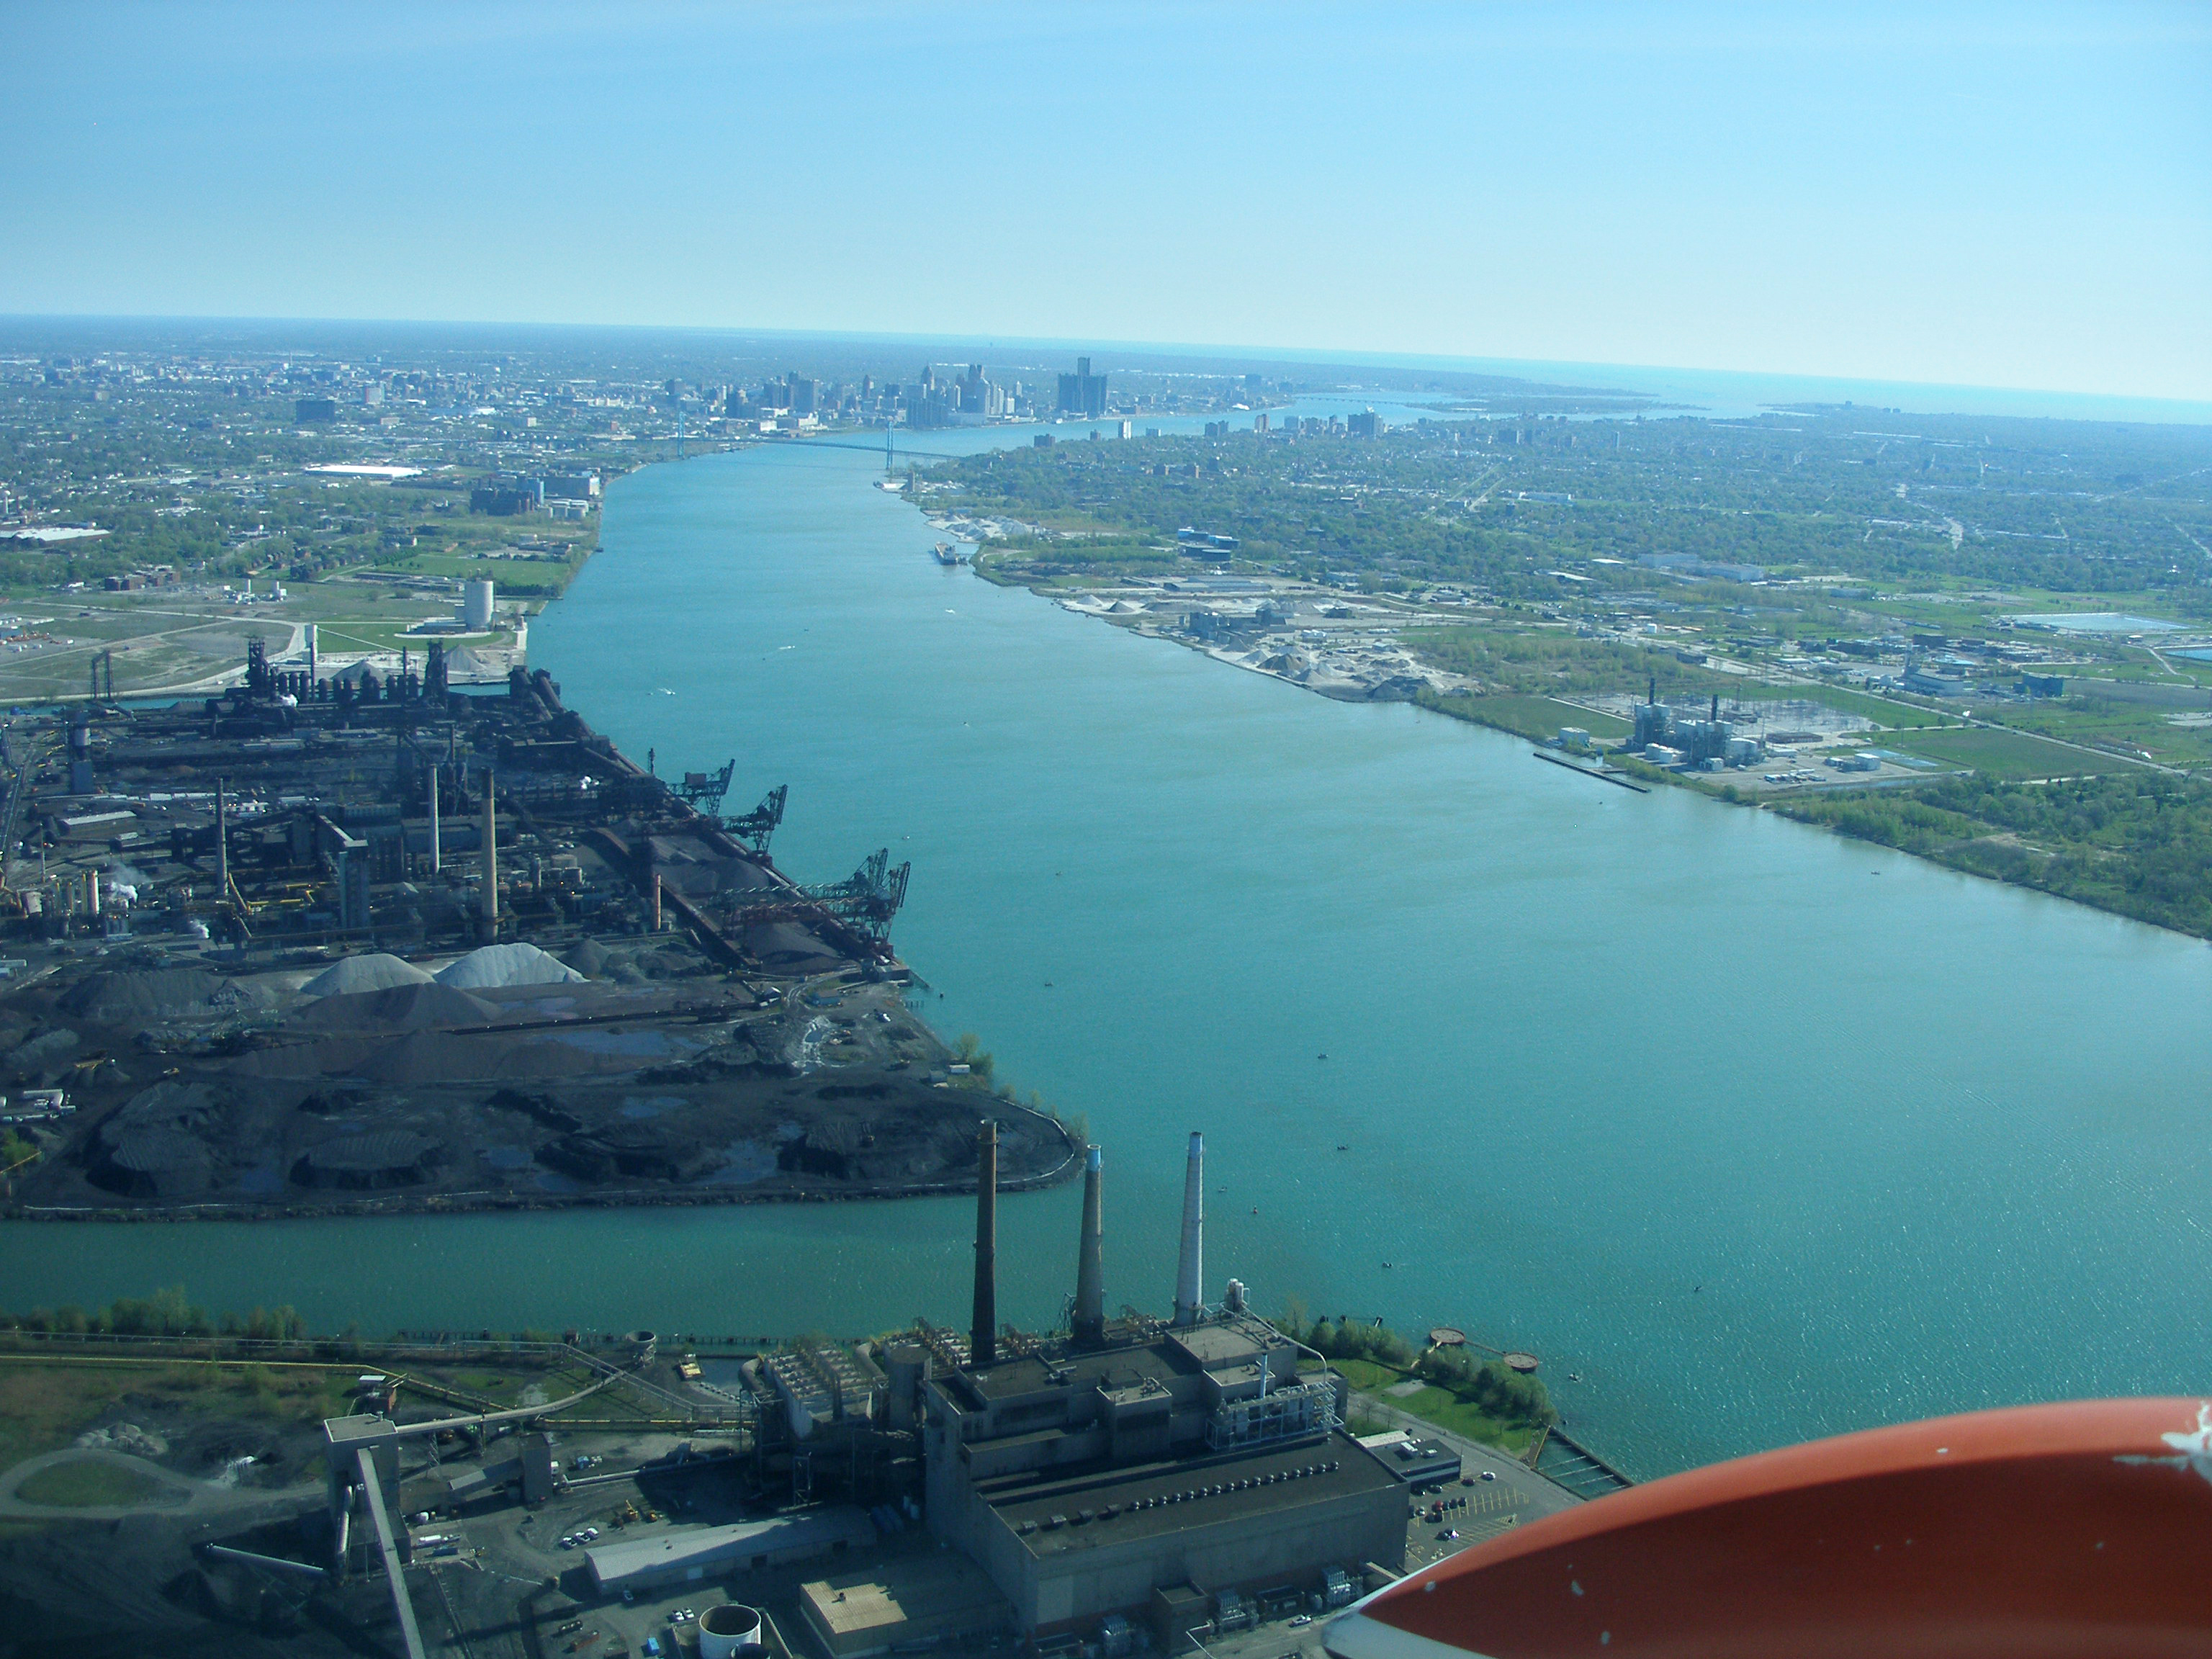 The Detroit River, looking upstream from the mouth of River Rouge toward downtown Detroit. Image credit: Michigan Sea Grant